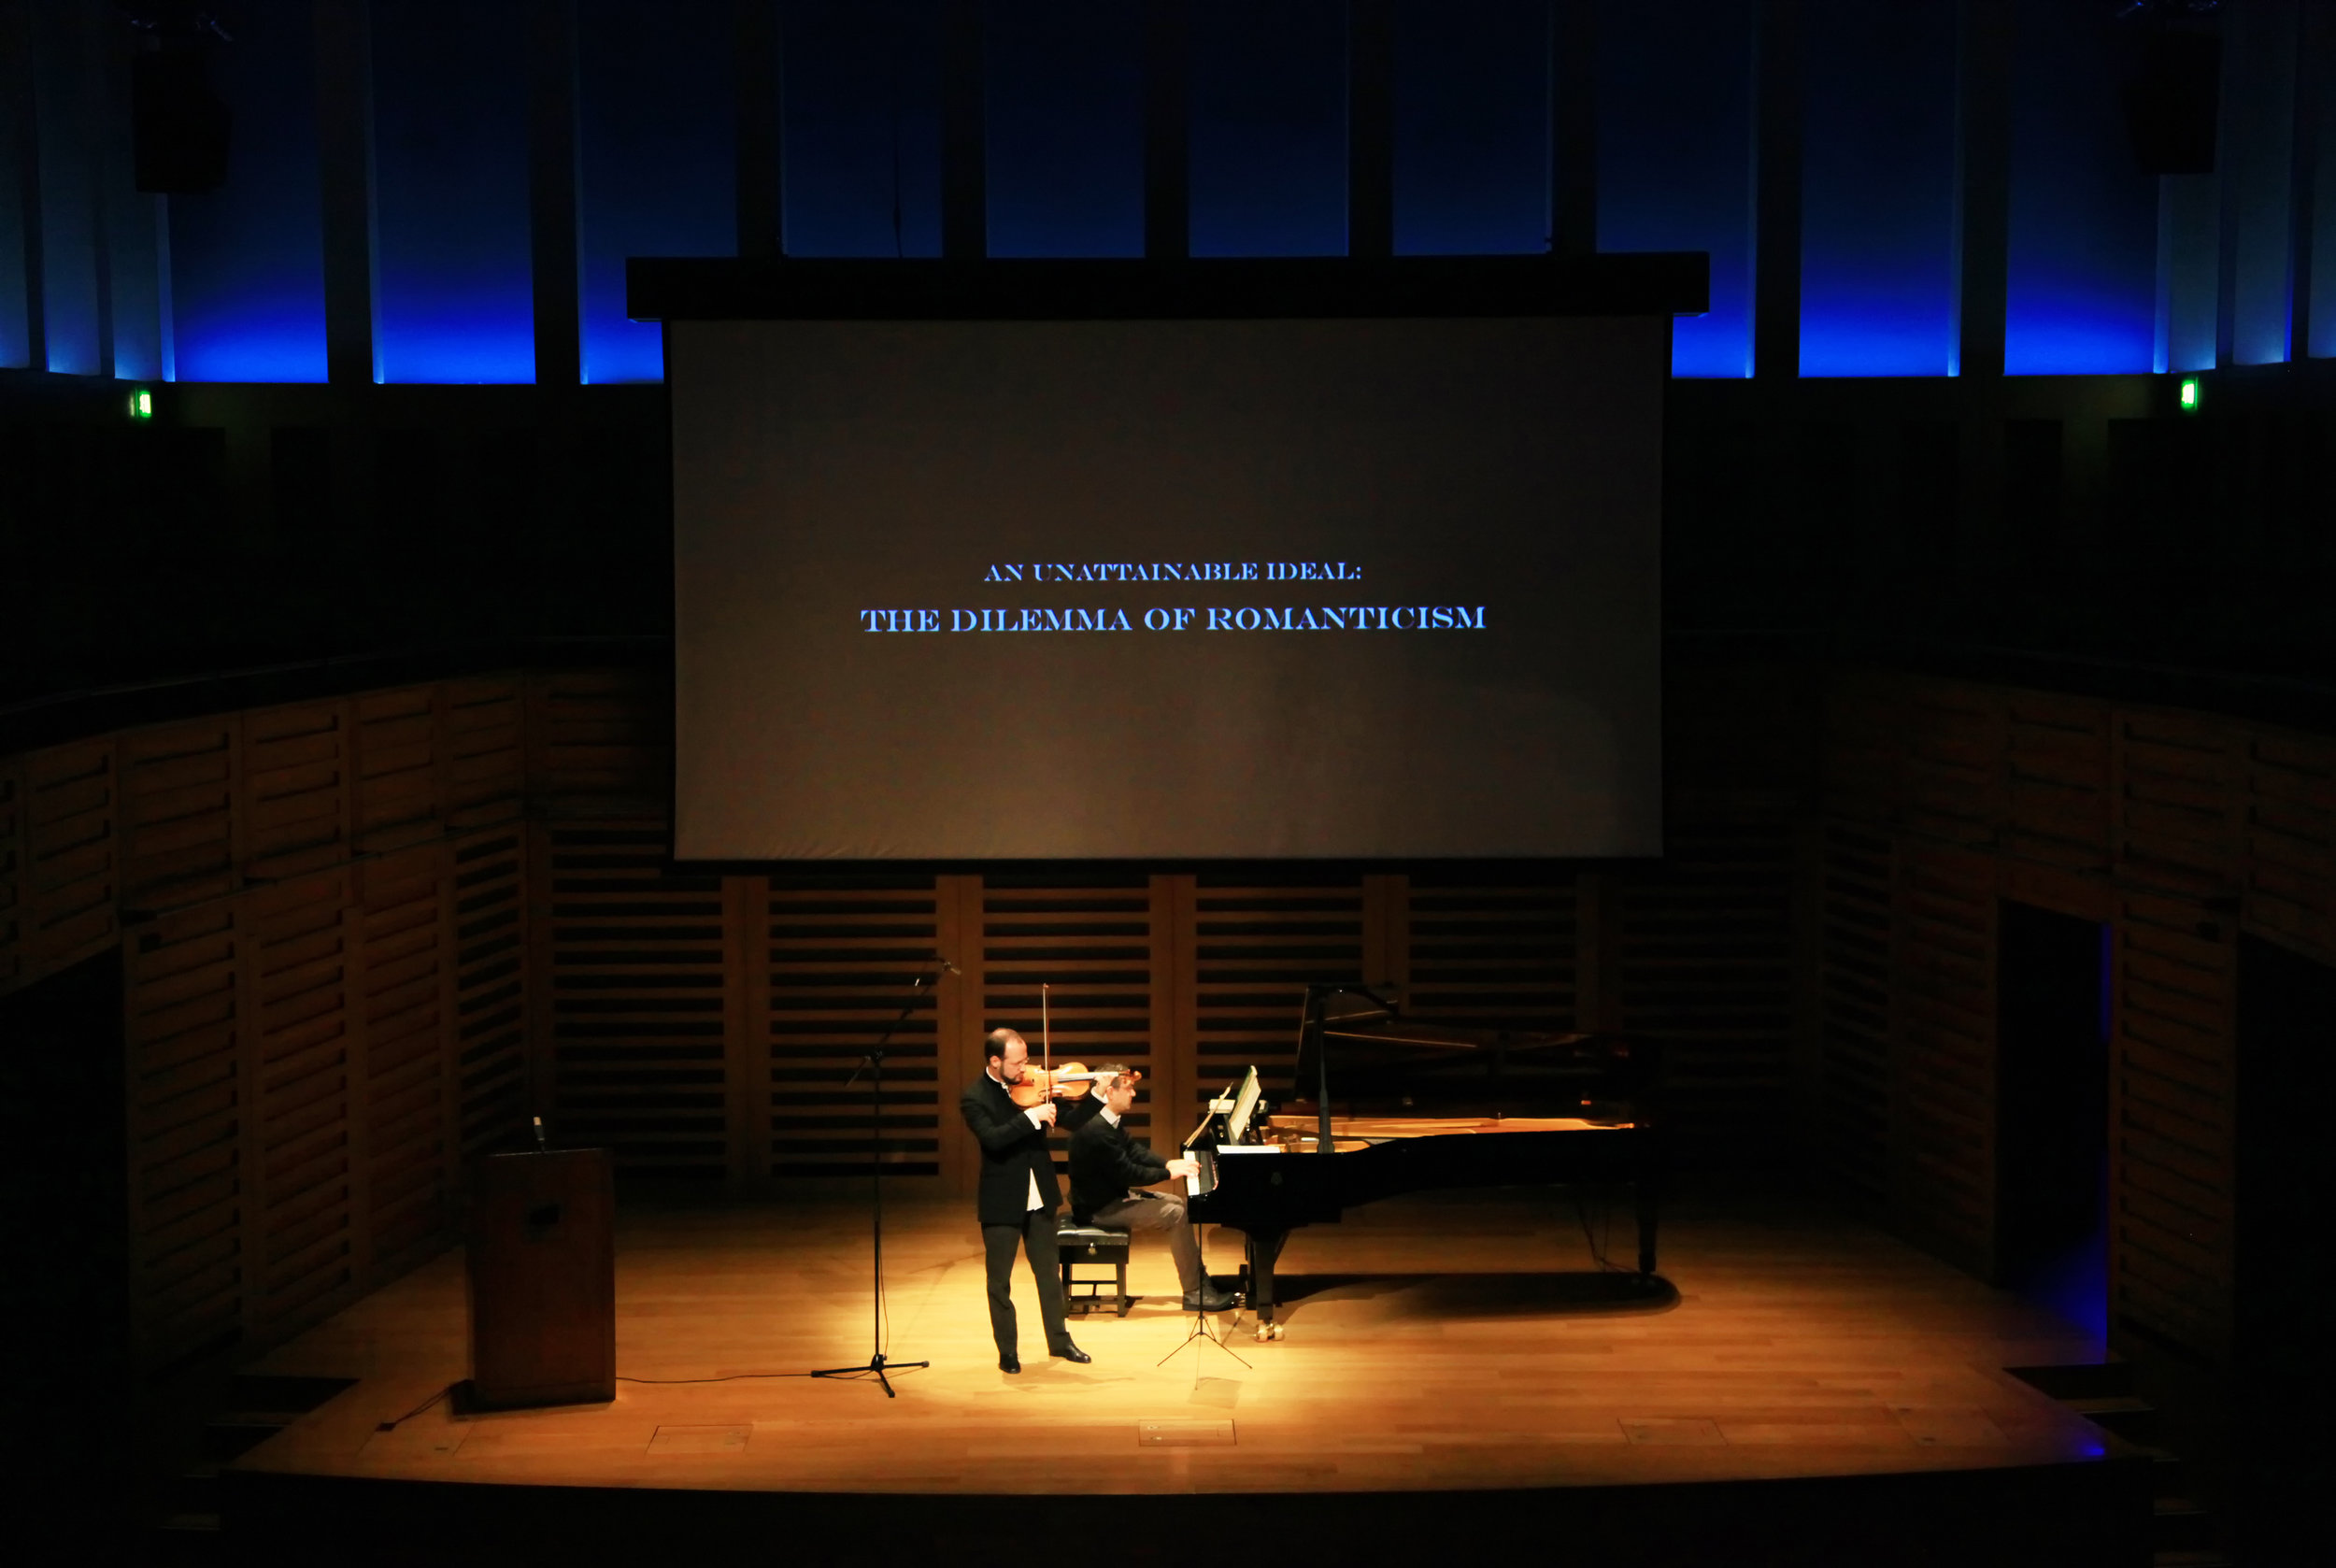 AN UNATTAINABLE IDEAL: THE DILEMMA OF ROMANTICISM - may 1, 2012. kings place, londonIakov Zats, violaVsevolod Dvorkin, pianoIllustrated talk by Ben StreetWorks by Brahms, Schumann and Franck